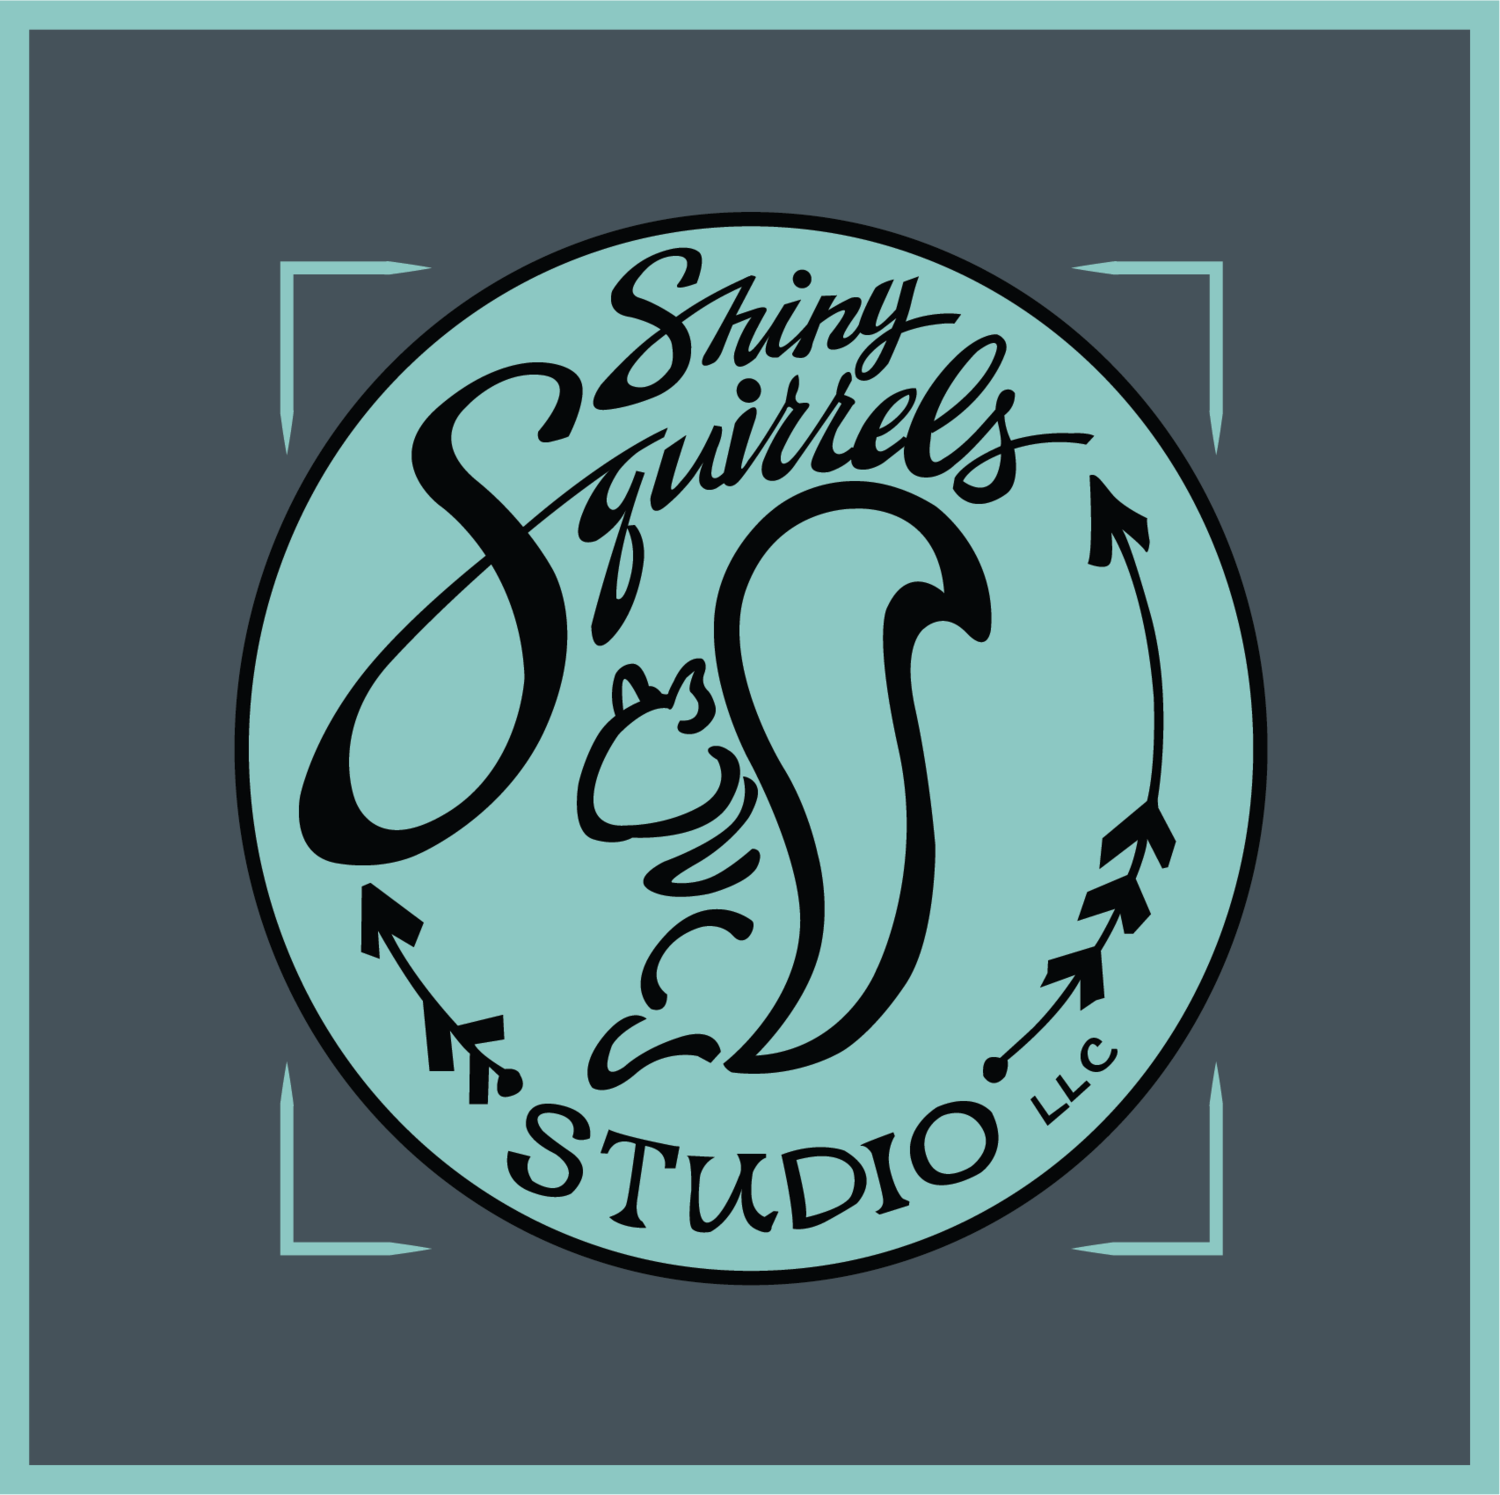 Shiny Squirrels Studio, LLC